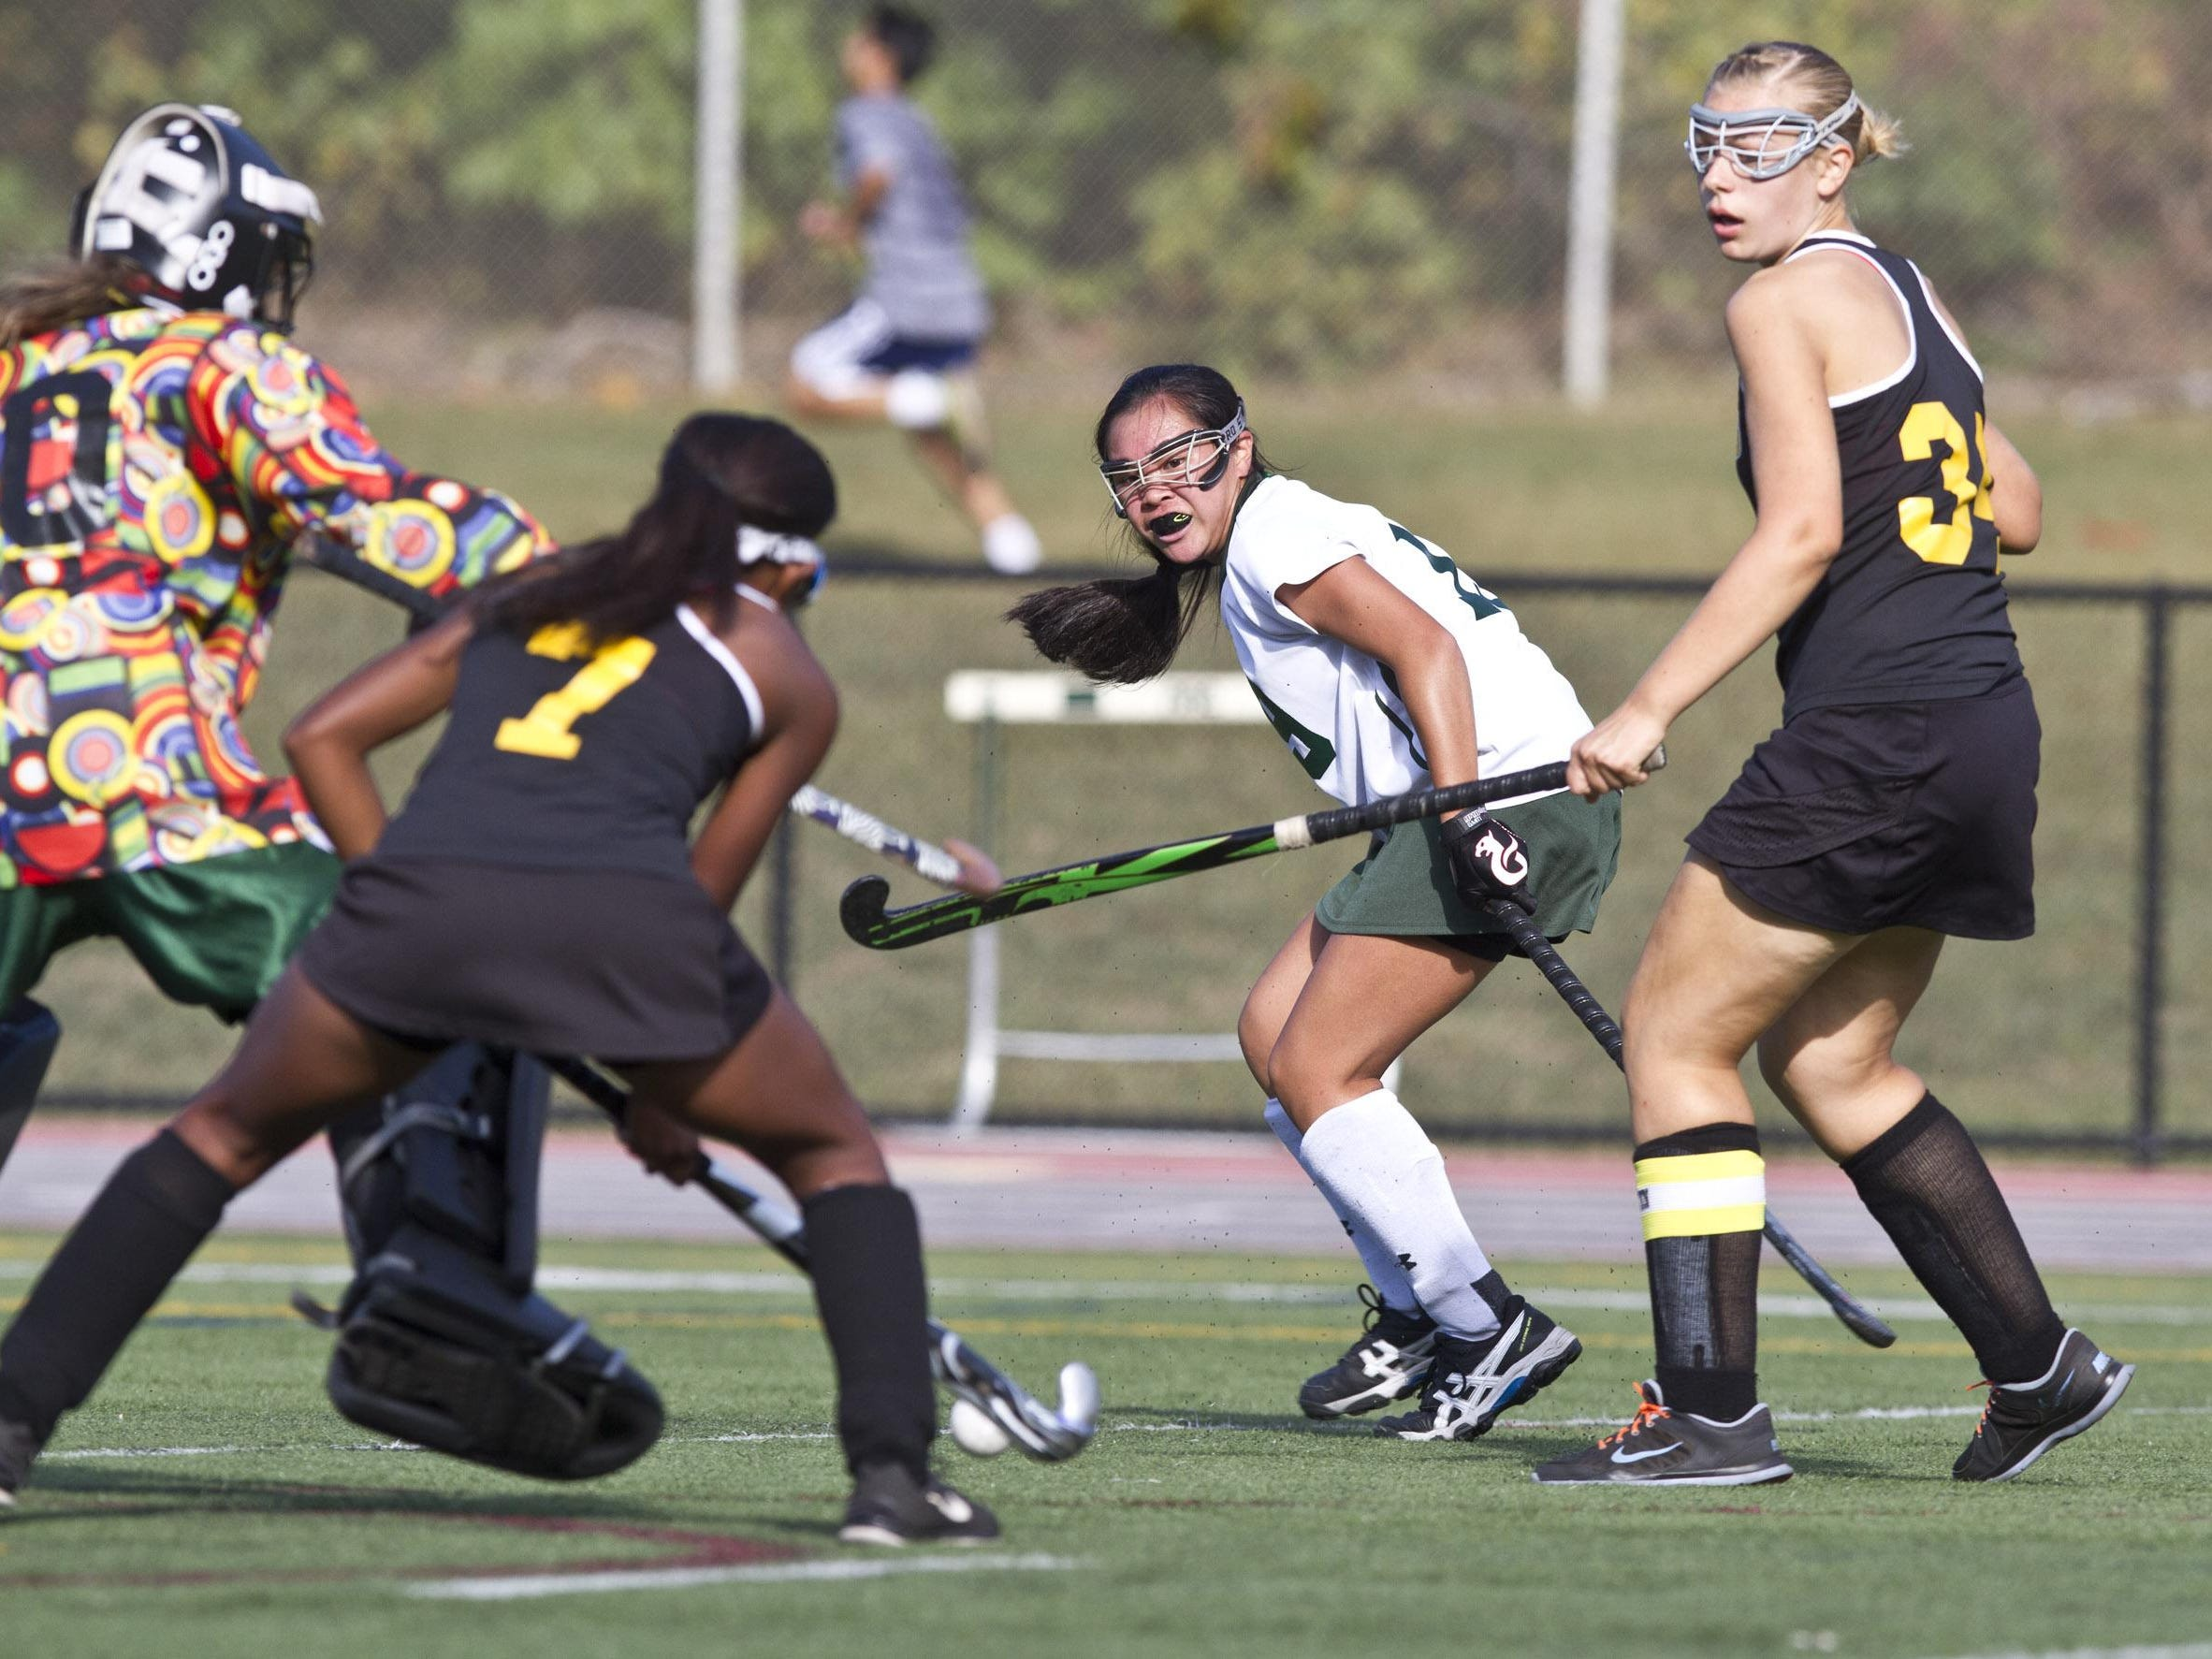 East Brunswick's Sydney Huang looks at her shot on goal being blocked by goal keep Nadya Khan and Dominique Nelson (7). Piscataway vs East Brunswick field hockey. 72670492 East Brunswick, NJ Thursday, September 24, 2015 @dhoodhood